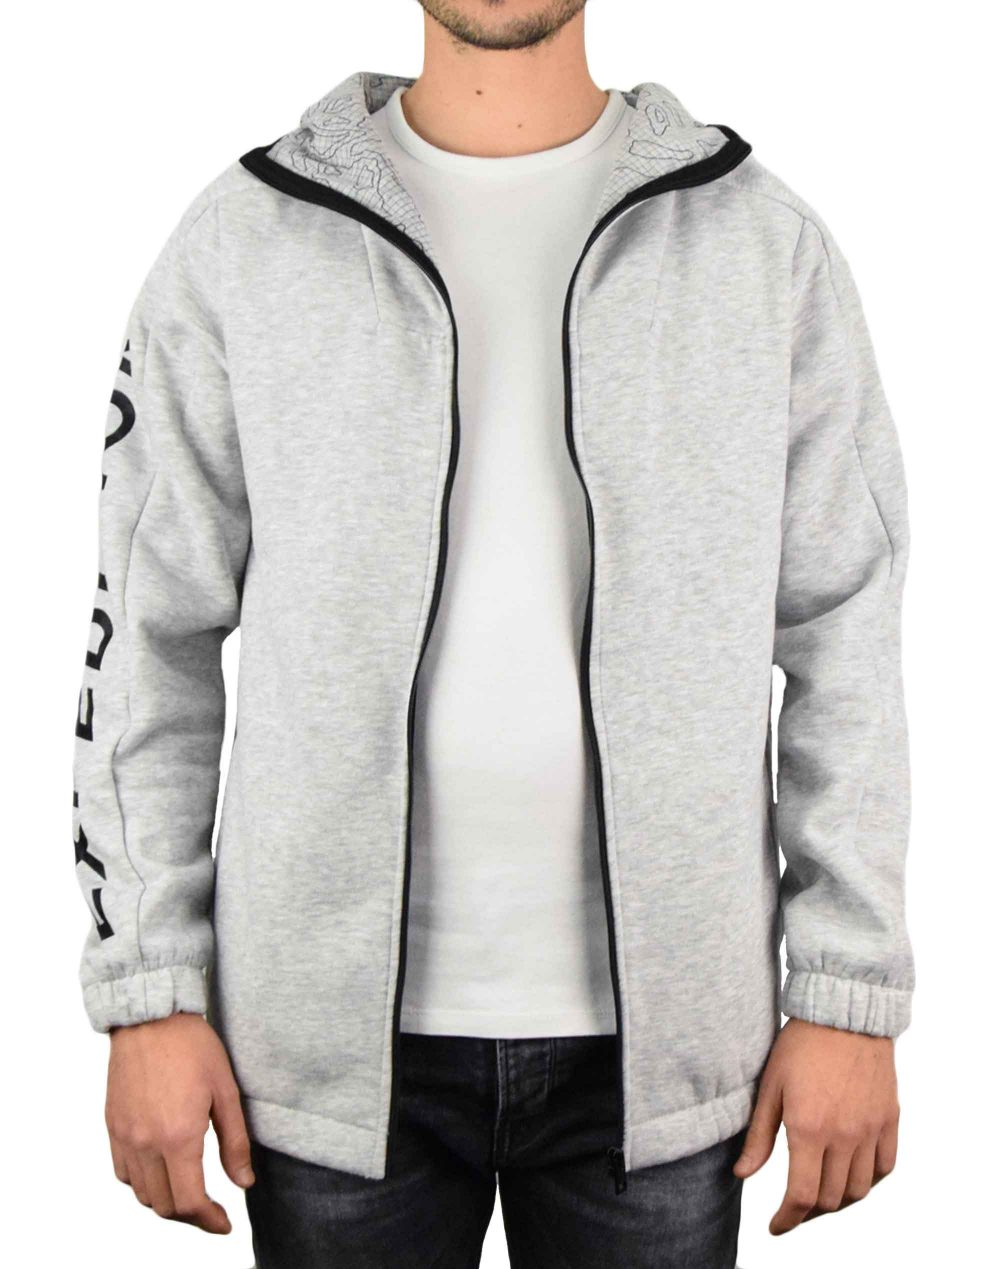 Jack & Jones Coug Sweat Zip Hood (12179645) Grey Melange